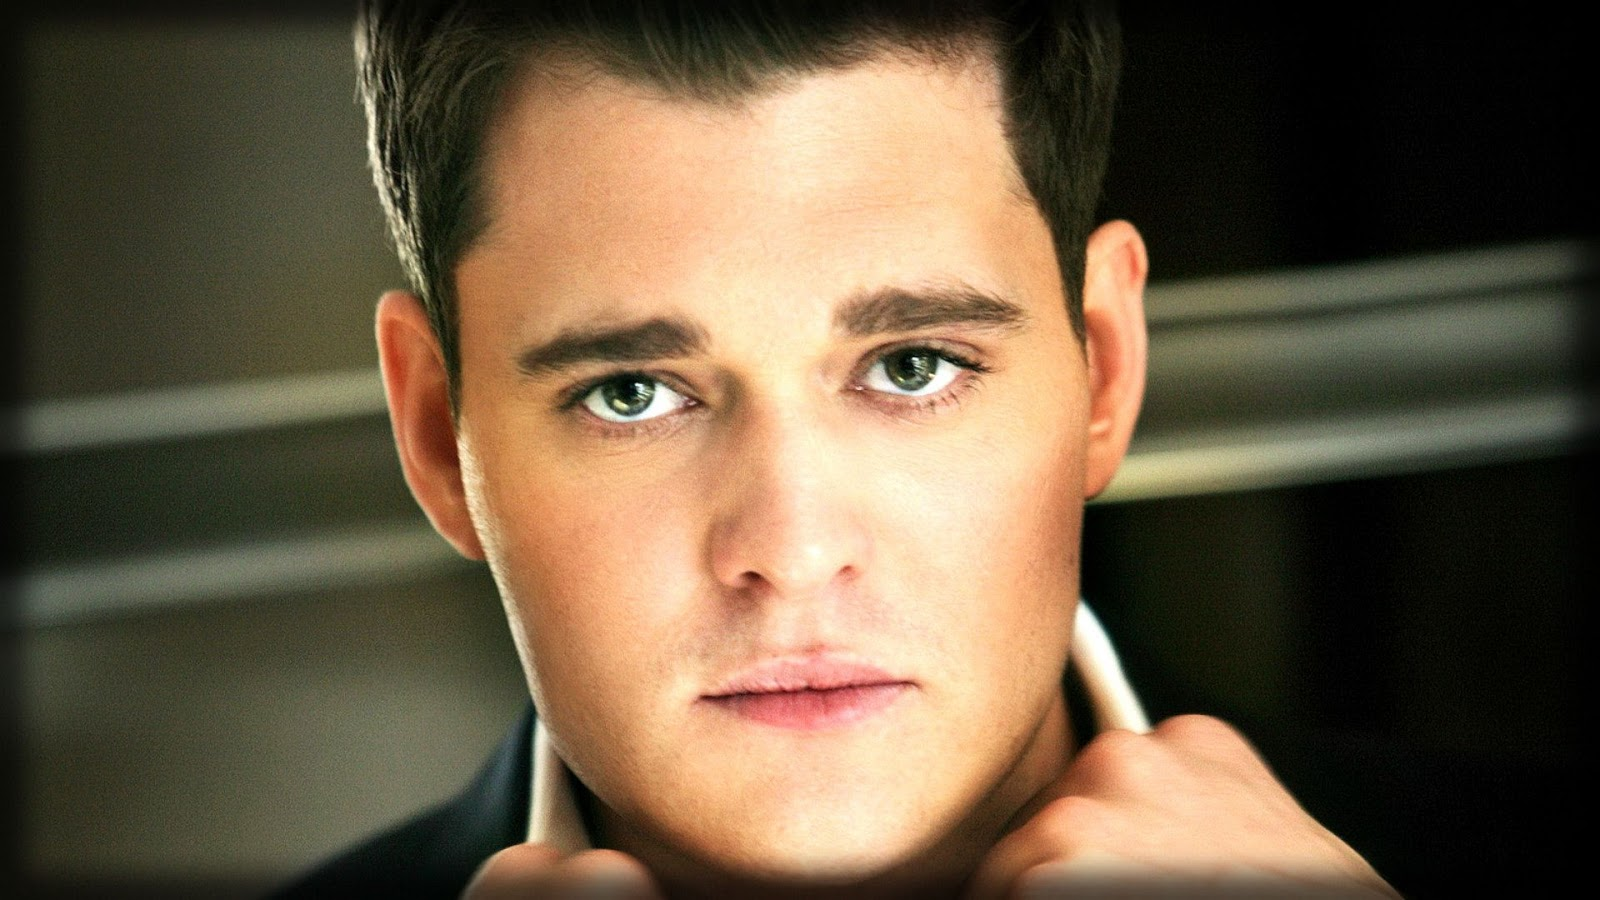 Michael_buble_03jpg